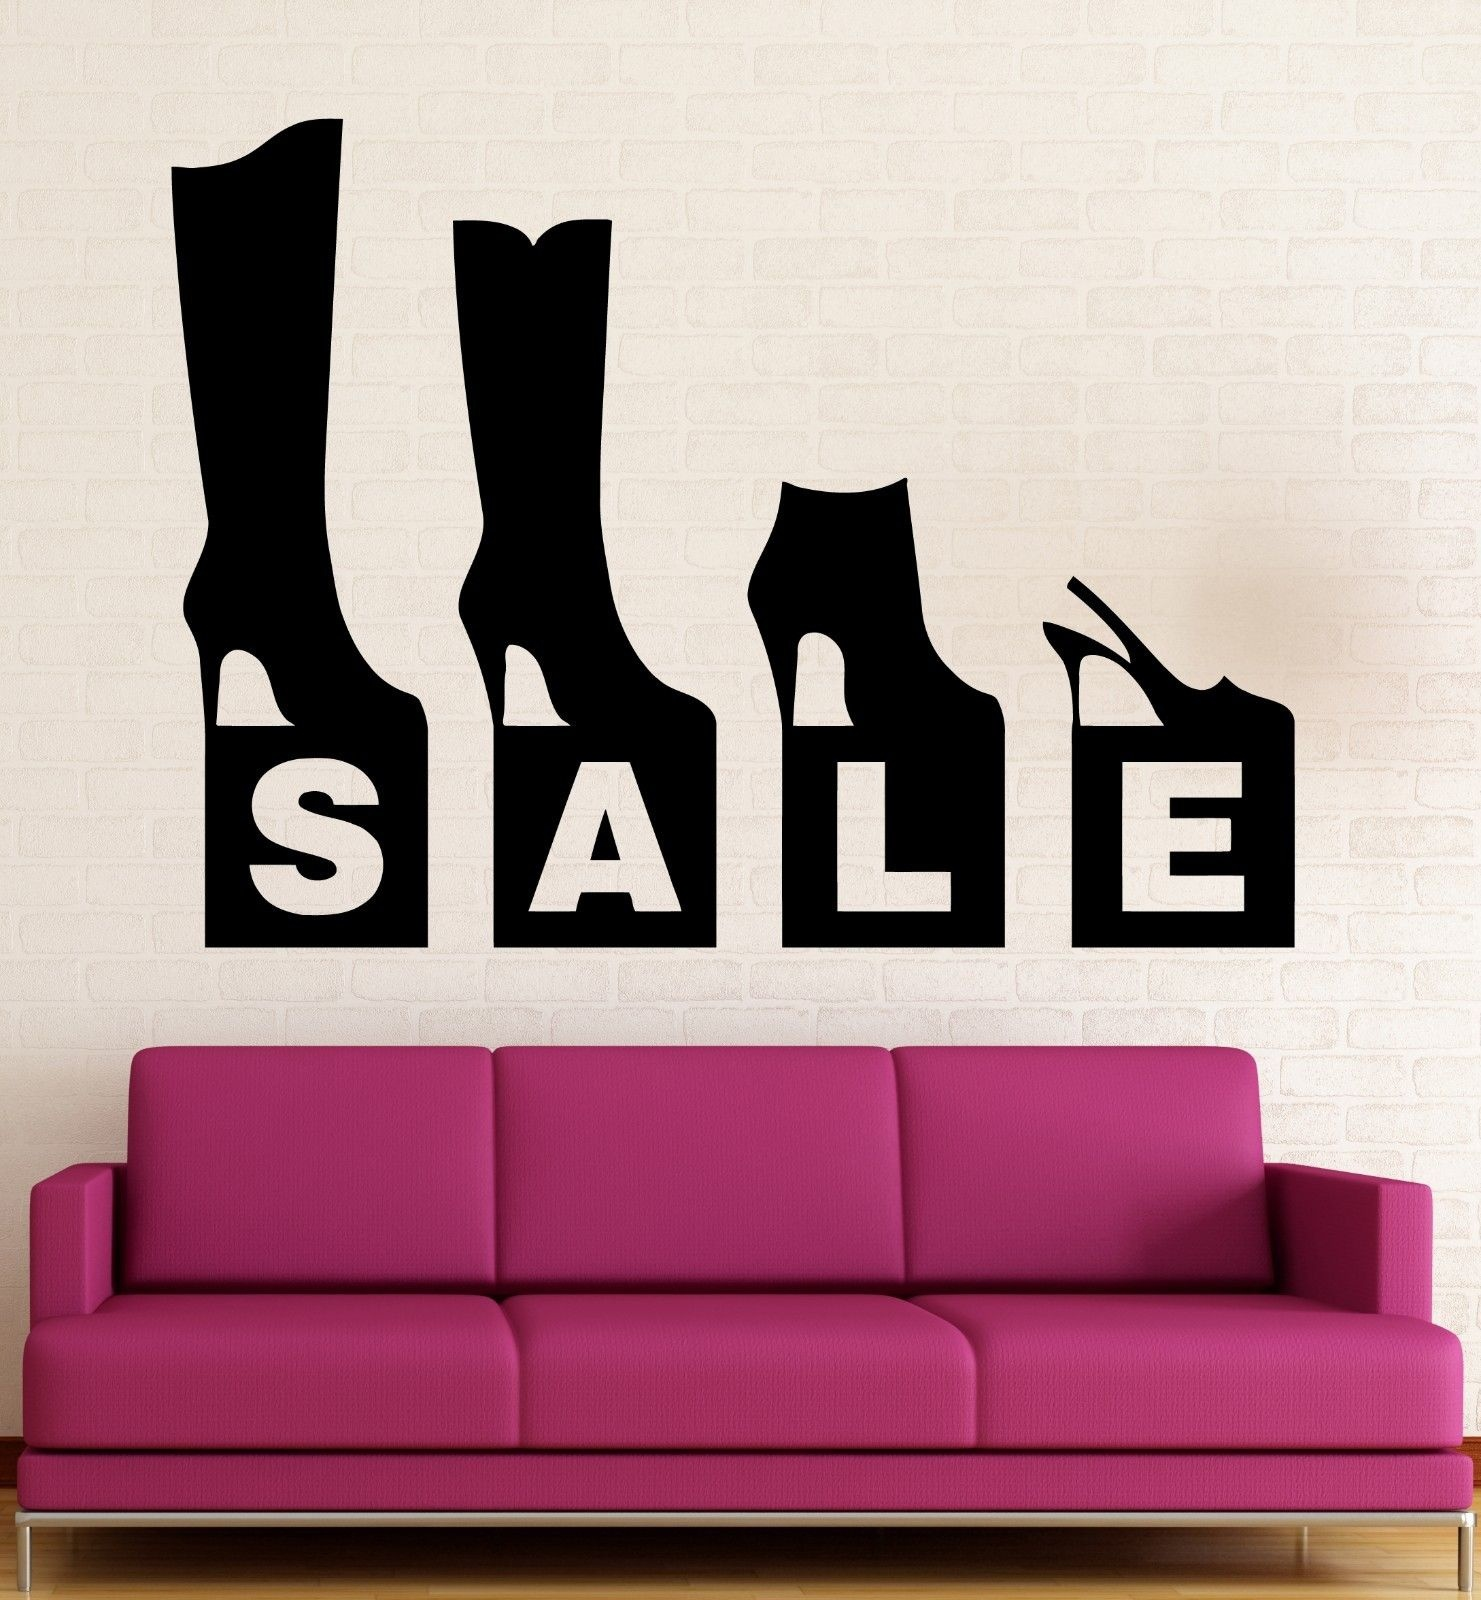 Shoe Store Wall Decal Sale Shopping Fashion SALE Quotes Window Decoration Vinyl Wall Sticker For Shops&Store ZS66